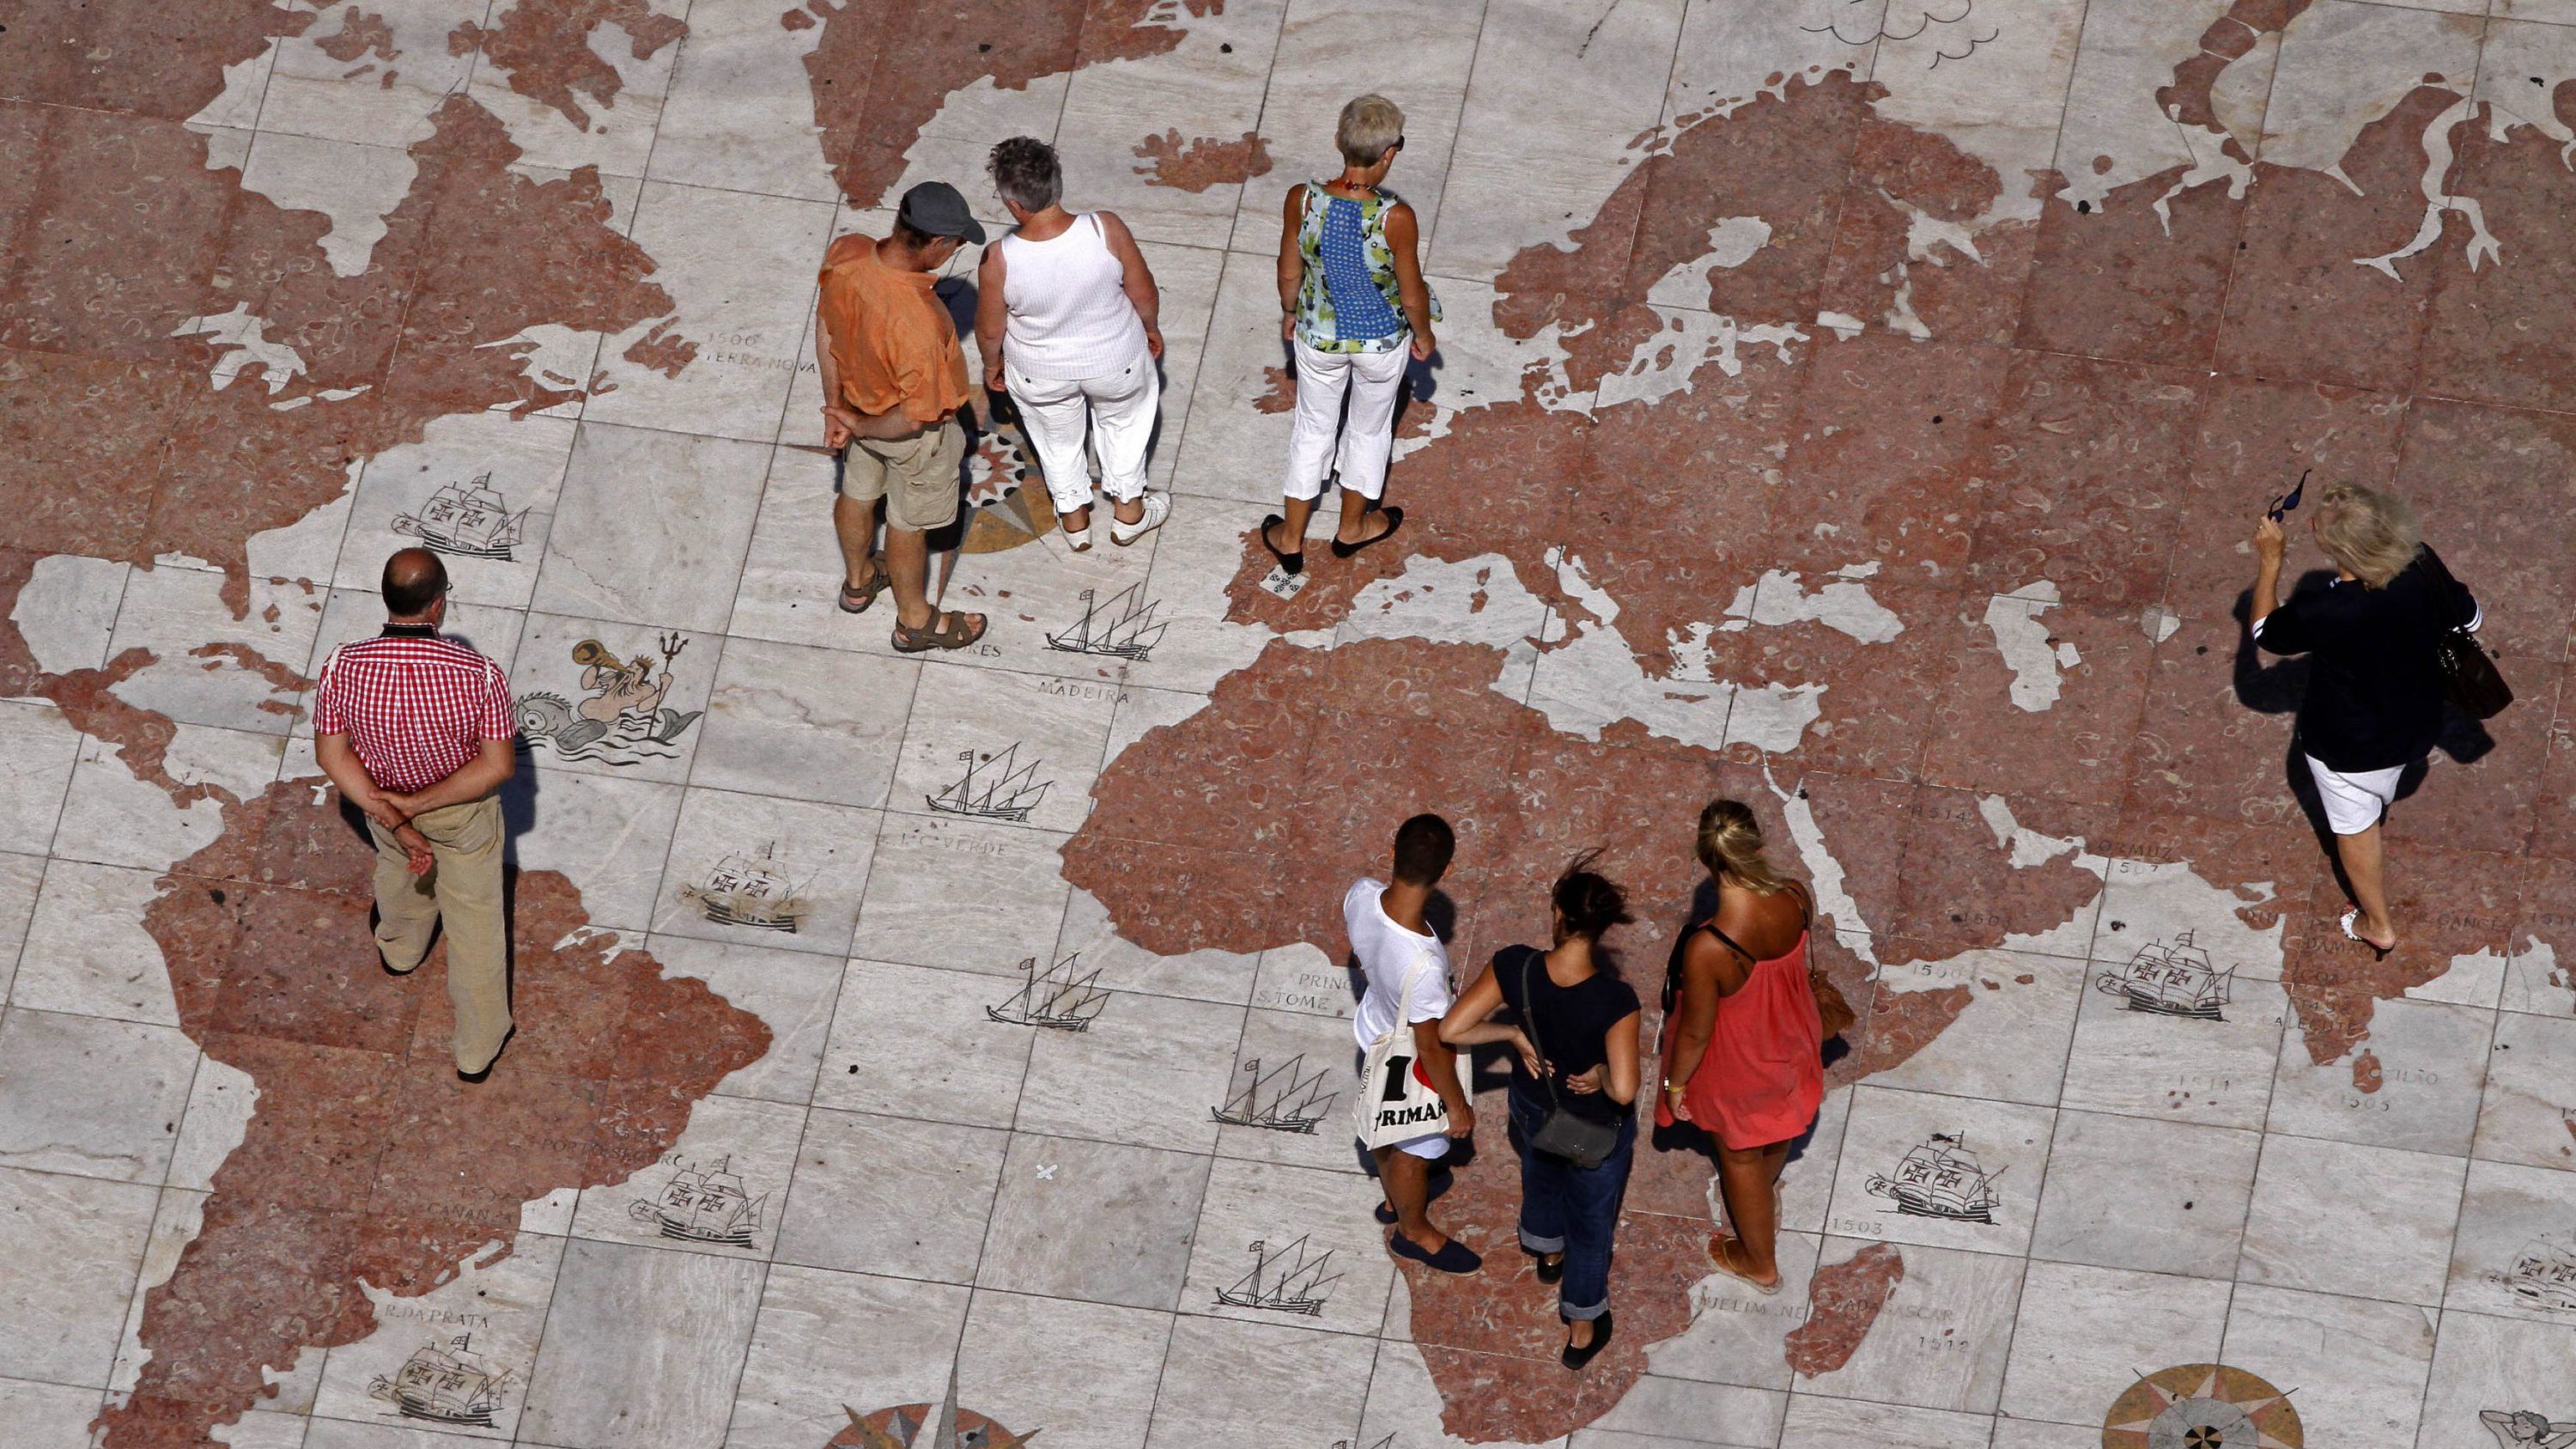 People walk over a world map engraved in marble in Lisbon September 14, 2011. Global markets have been roiled since the end of July by the twin fears of a recession in the United States and Europe's protracted debt woes, which have forced Greece, Ireland and Portugal to take bailouts and piled bond market pressure on Italy and Spain.